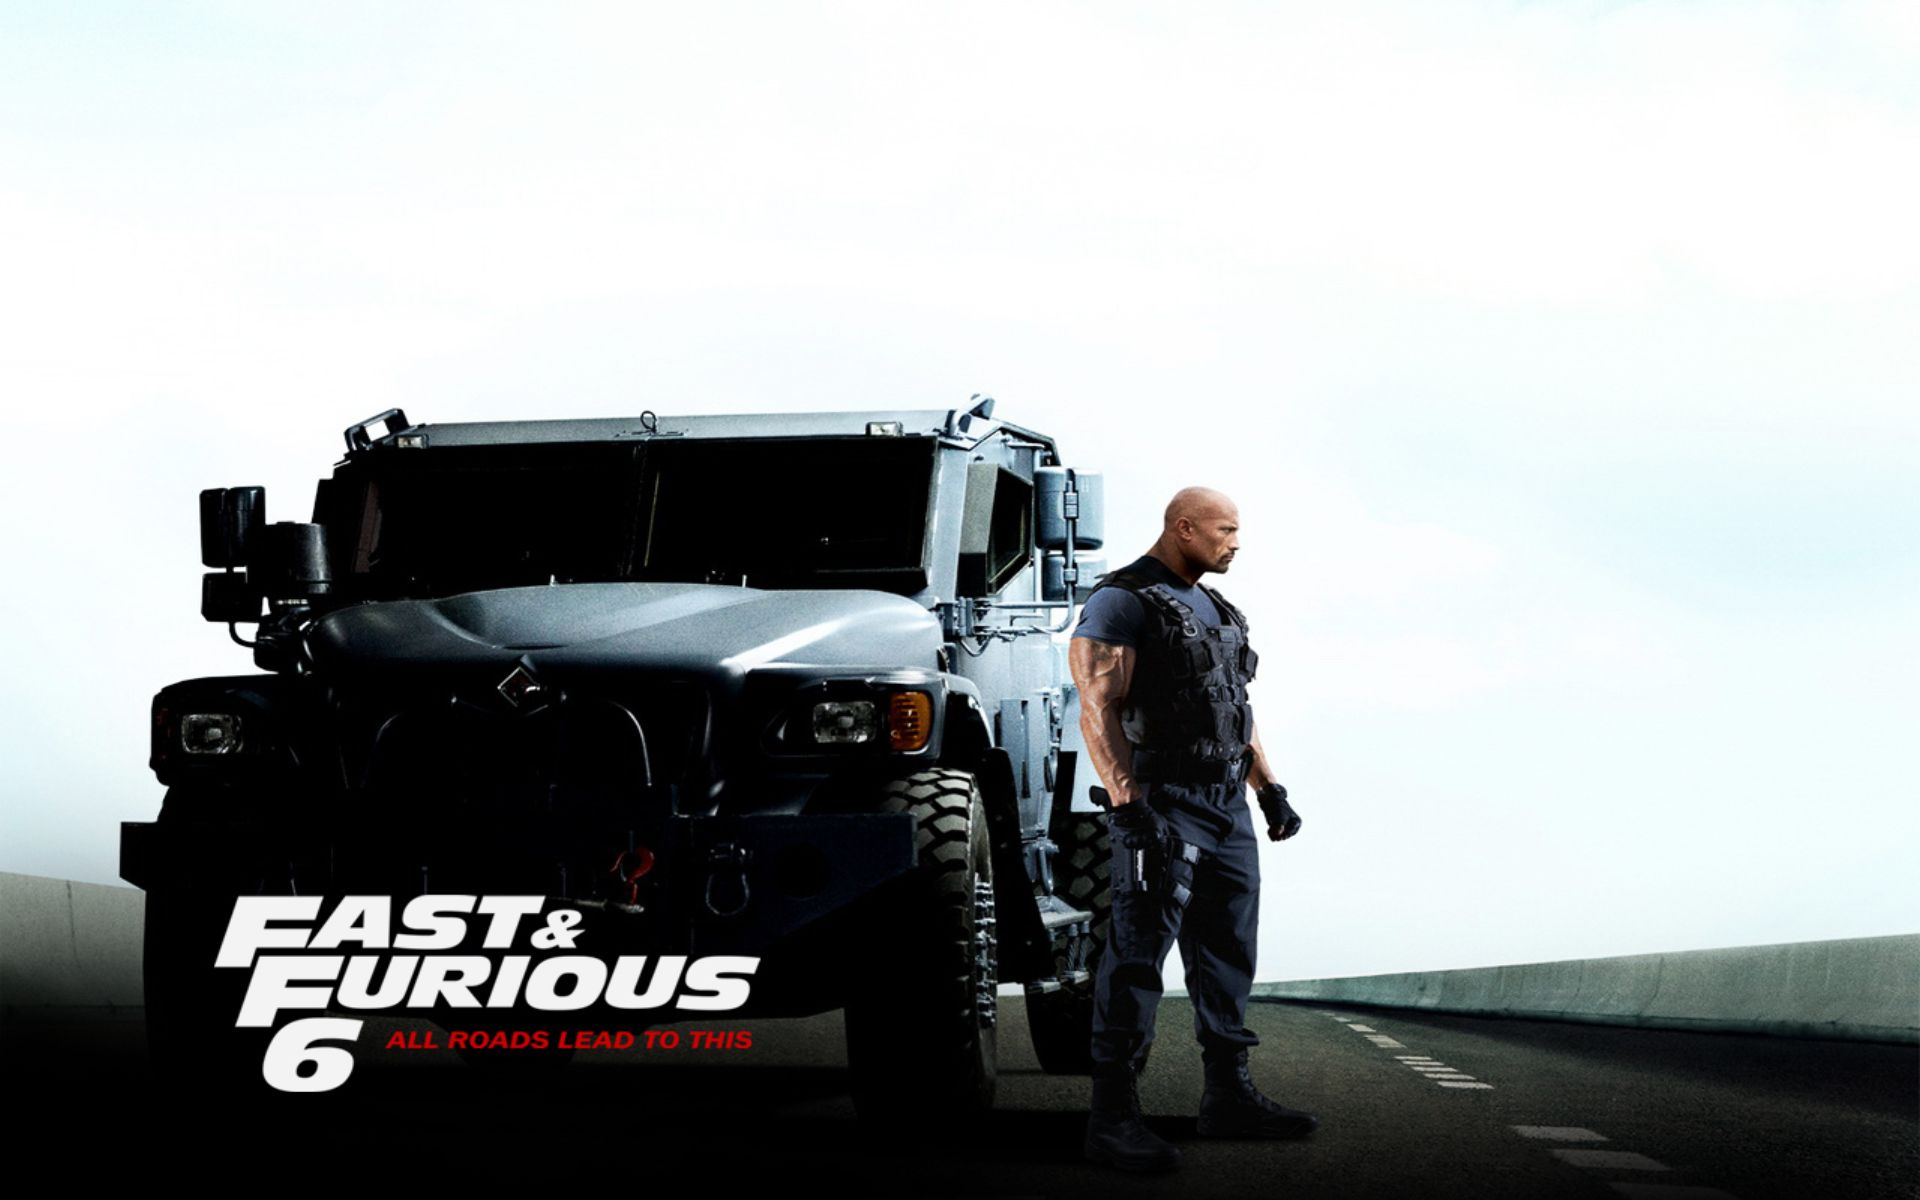 Fast And Furious 7 Cars Wallpapers Hd Fast And Furious Backgrounds Free Download Pixelstalk Net